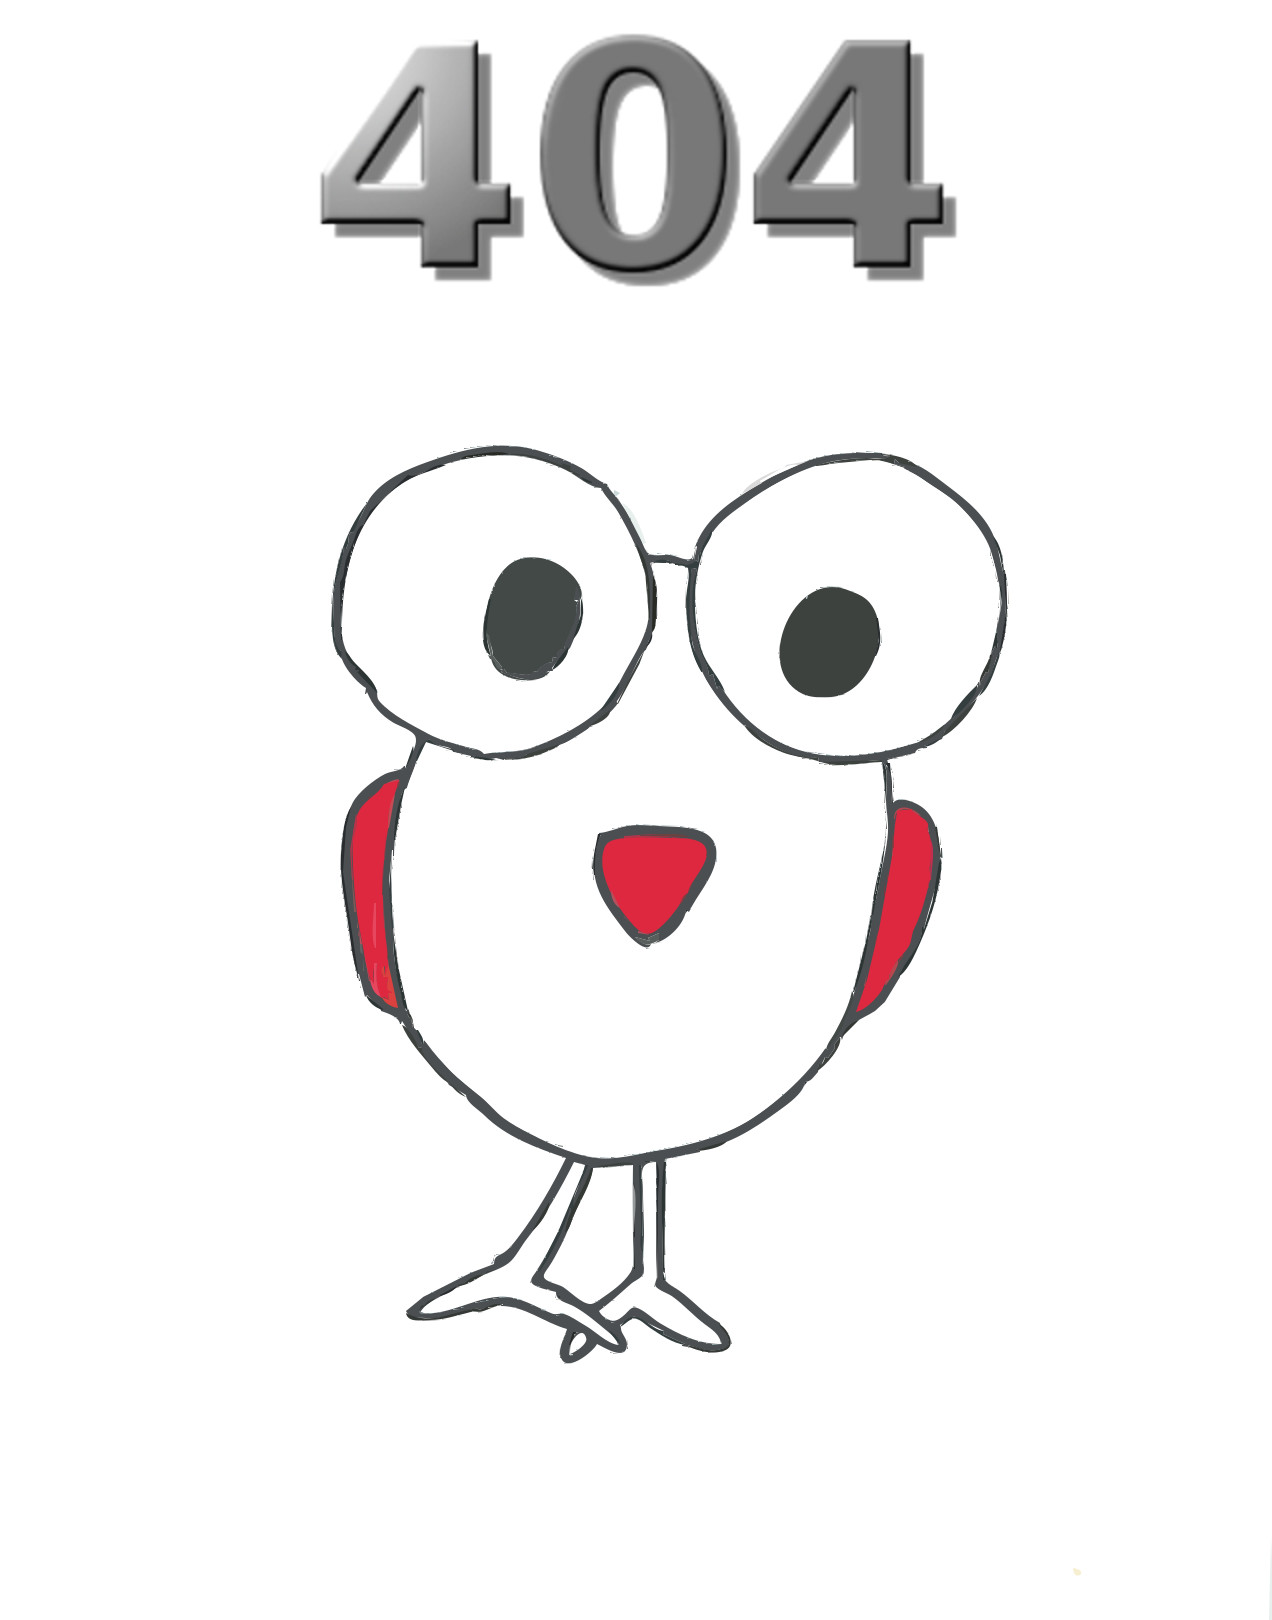 Big-Eyed-Bird-404 composite.jpg